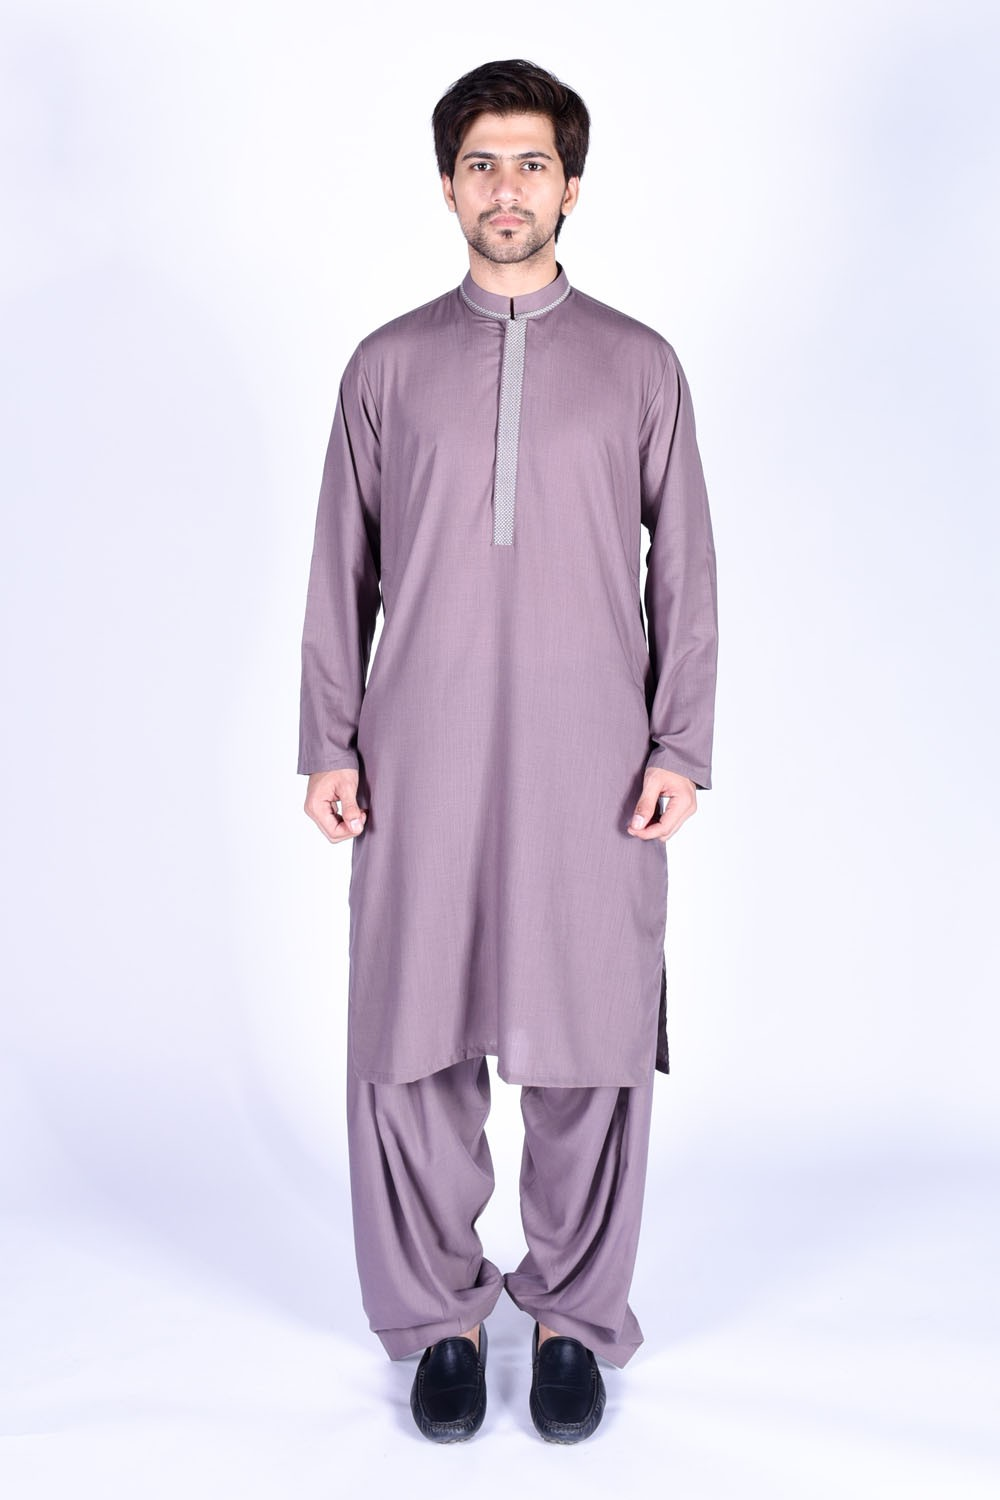 bonanza men Bonanza men sweaters collection 2014 has been launched bonanza sweaters for men are available online at bonanza e-store bonanza men sweaters prices published.